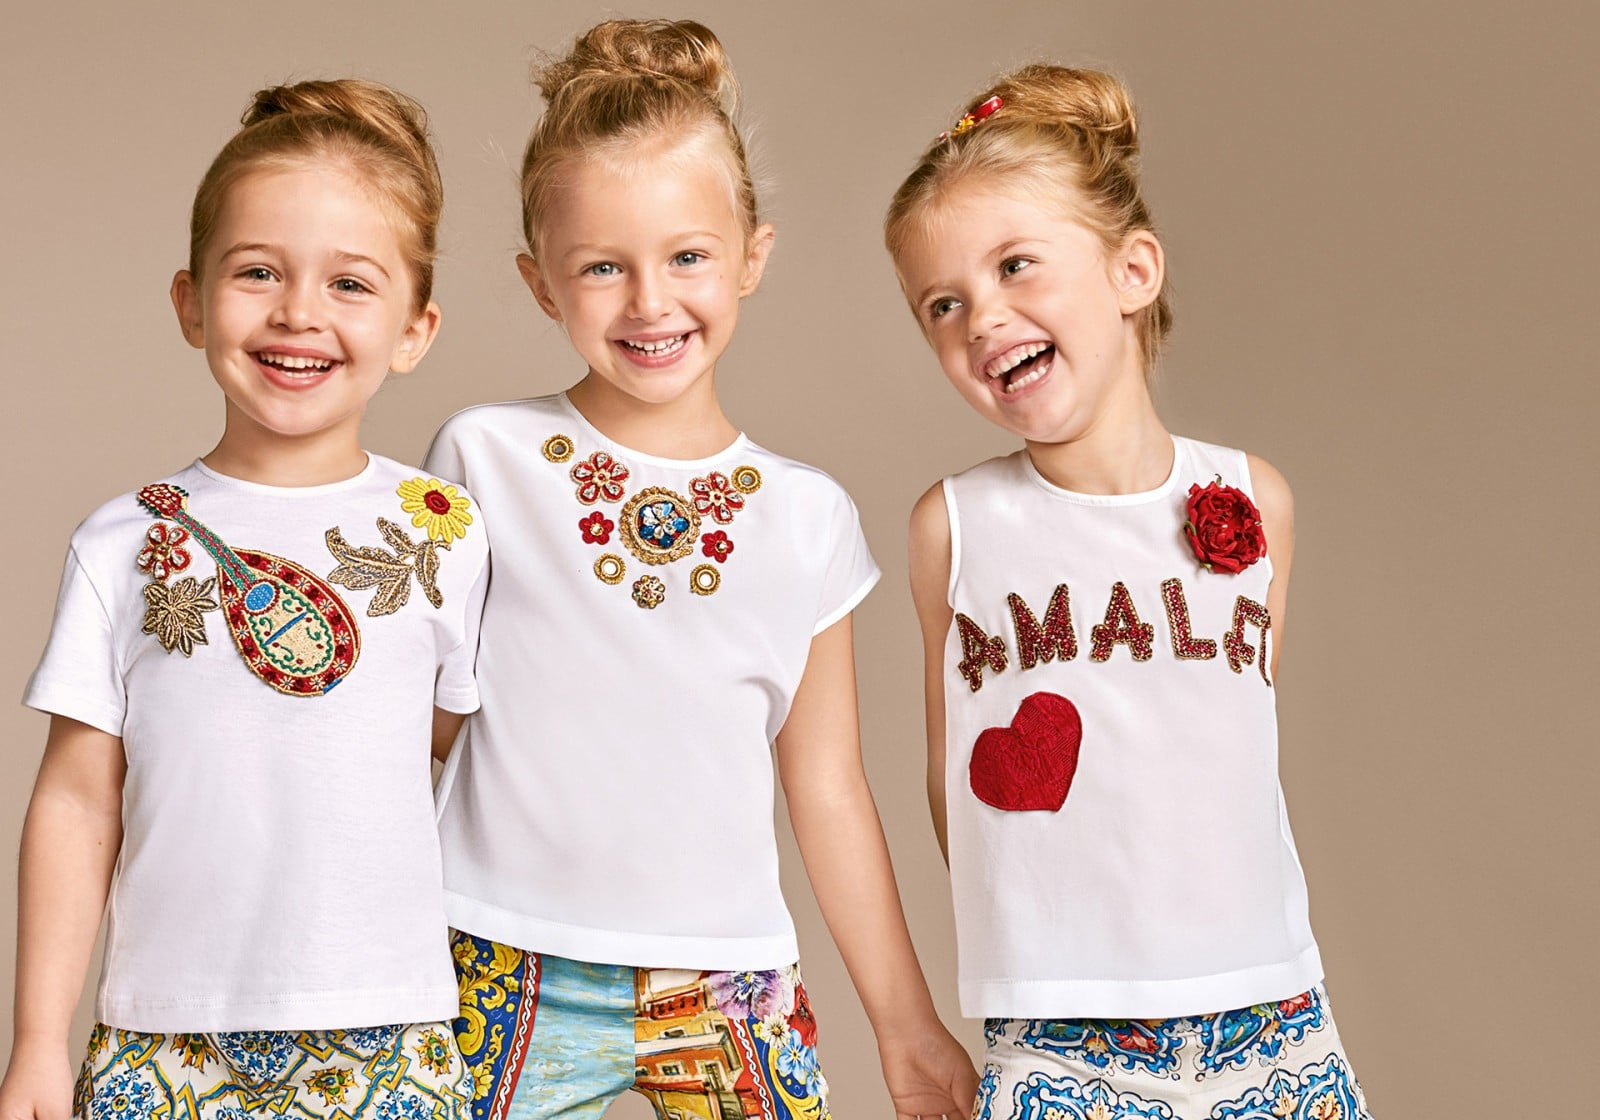 dolce-and-gabbana-summer-2016-child-collection-501-1600x1120.jpg